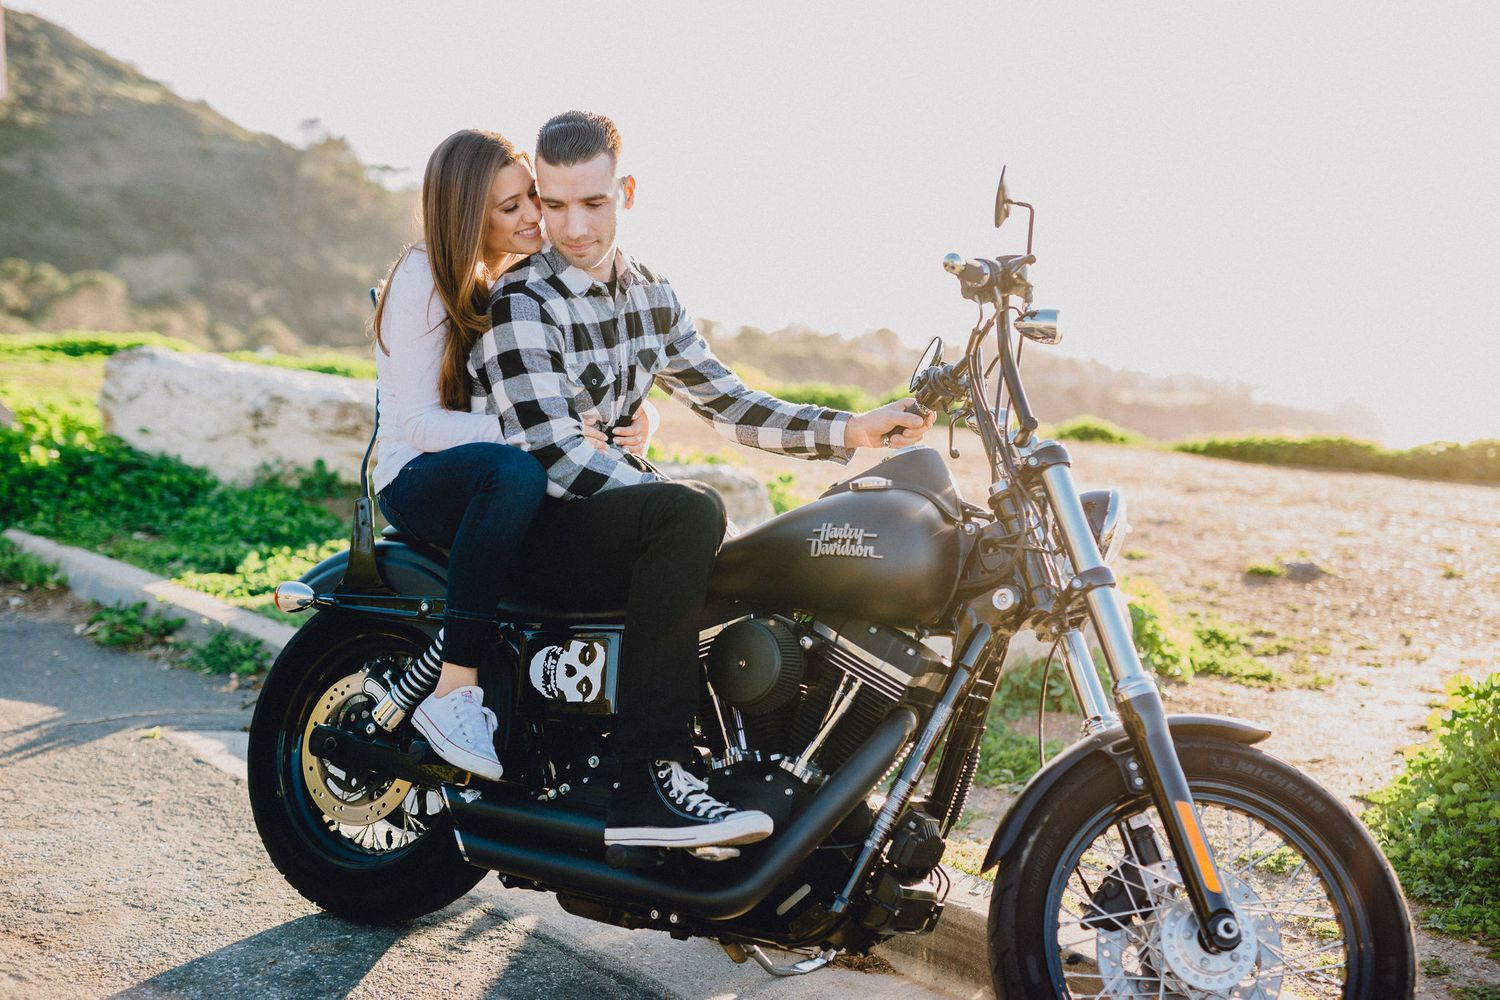 engagement photo on motorcycle